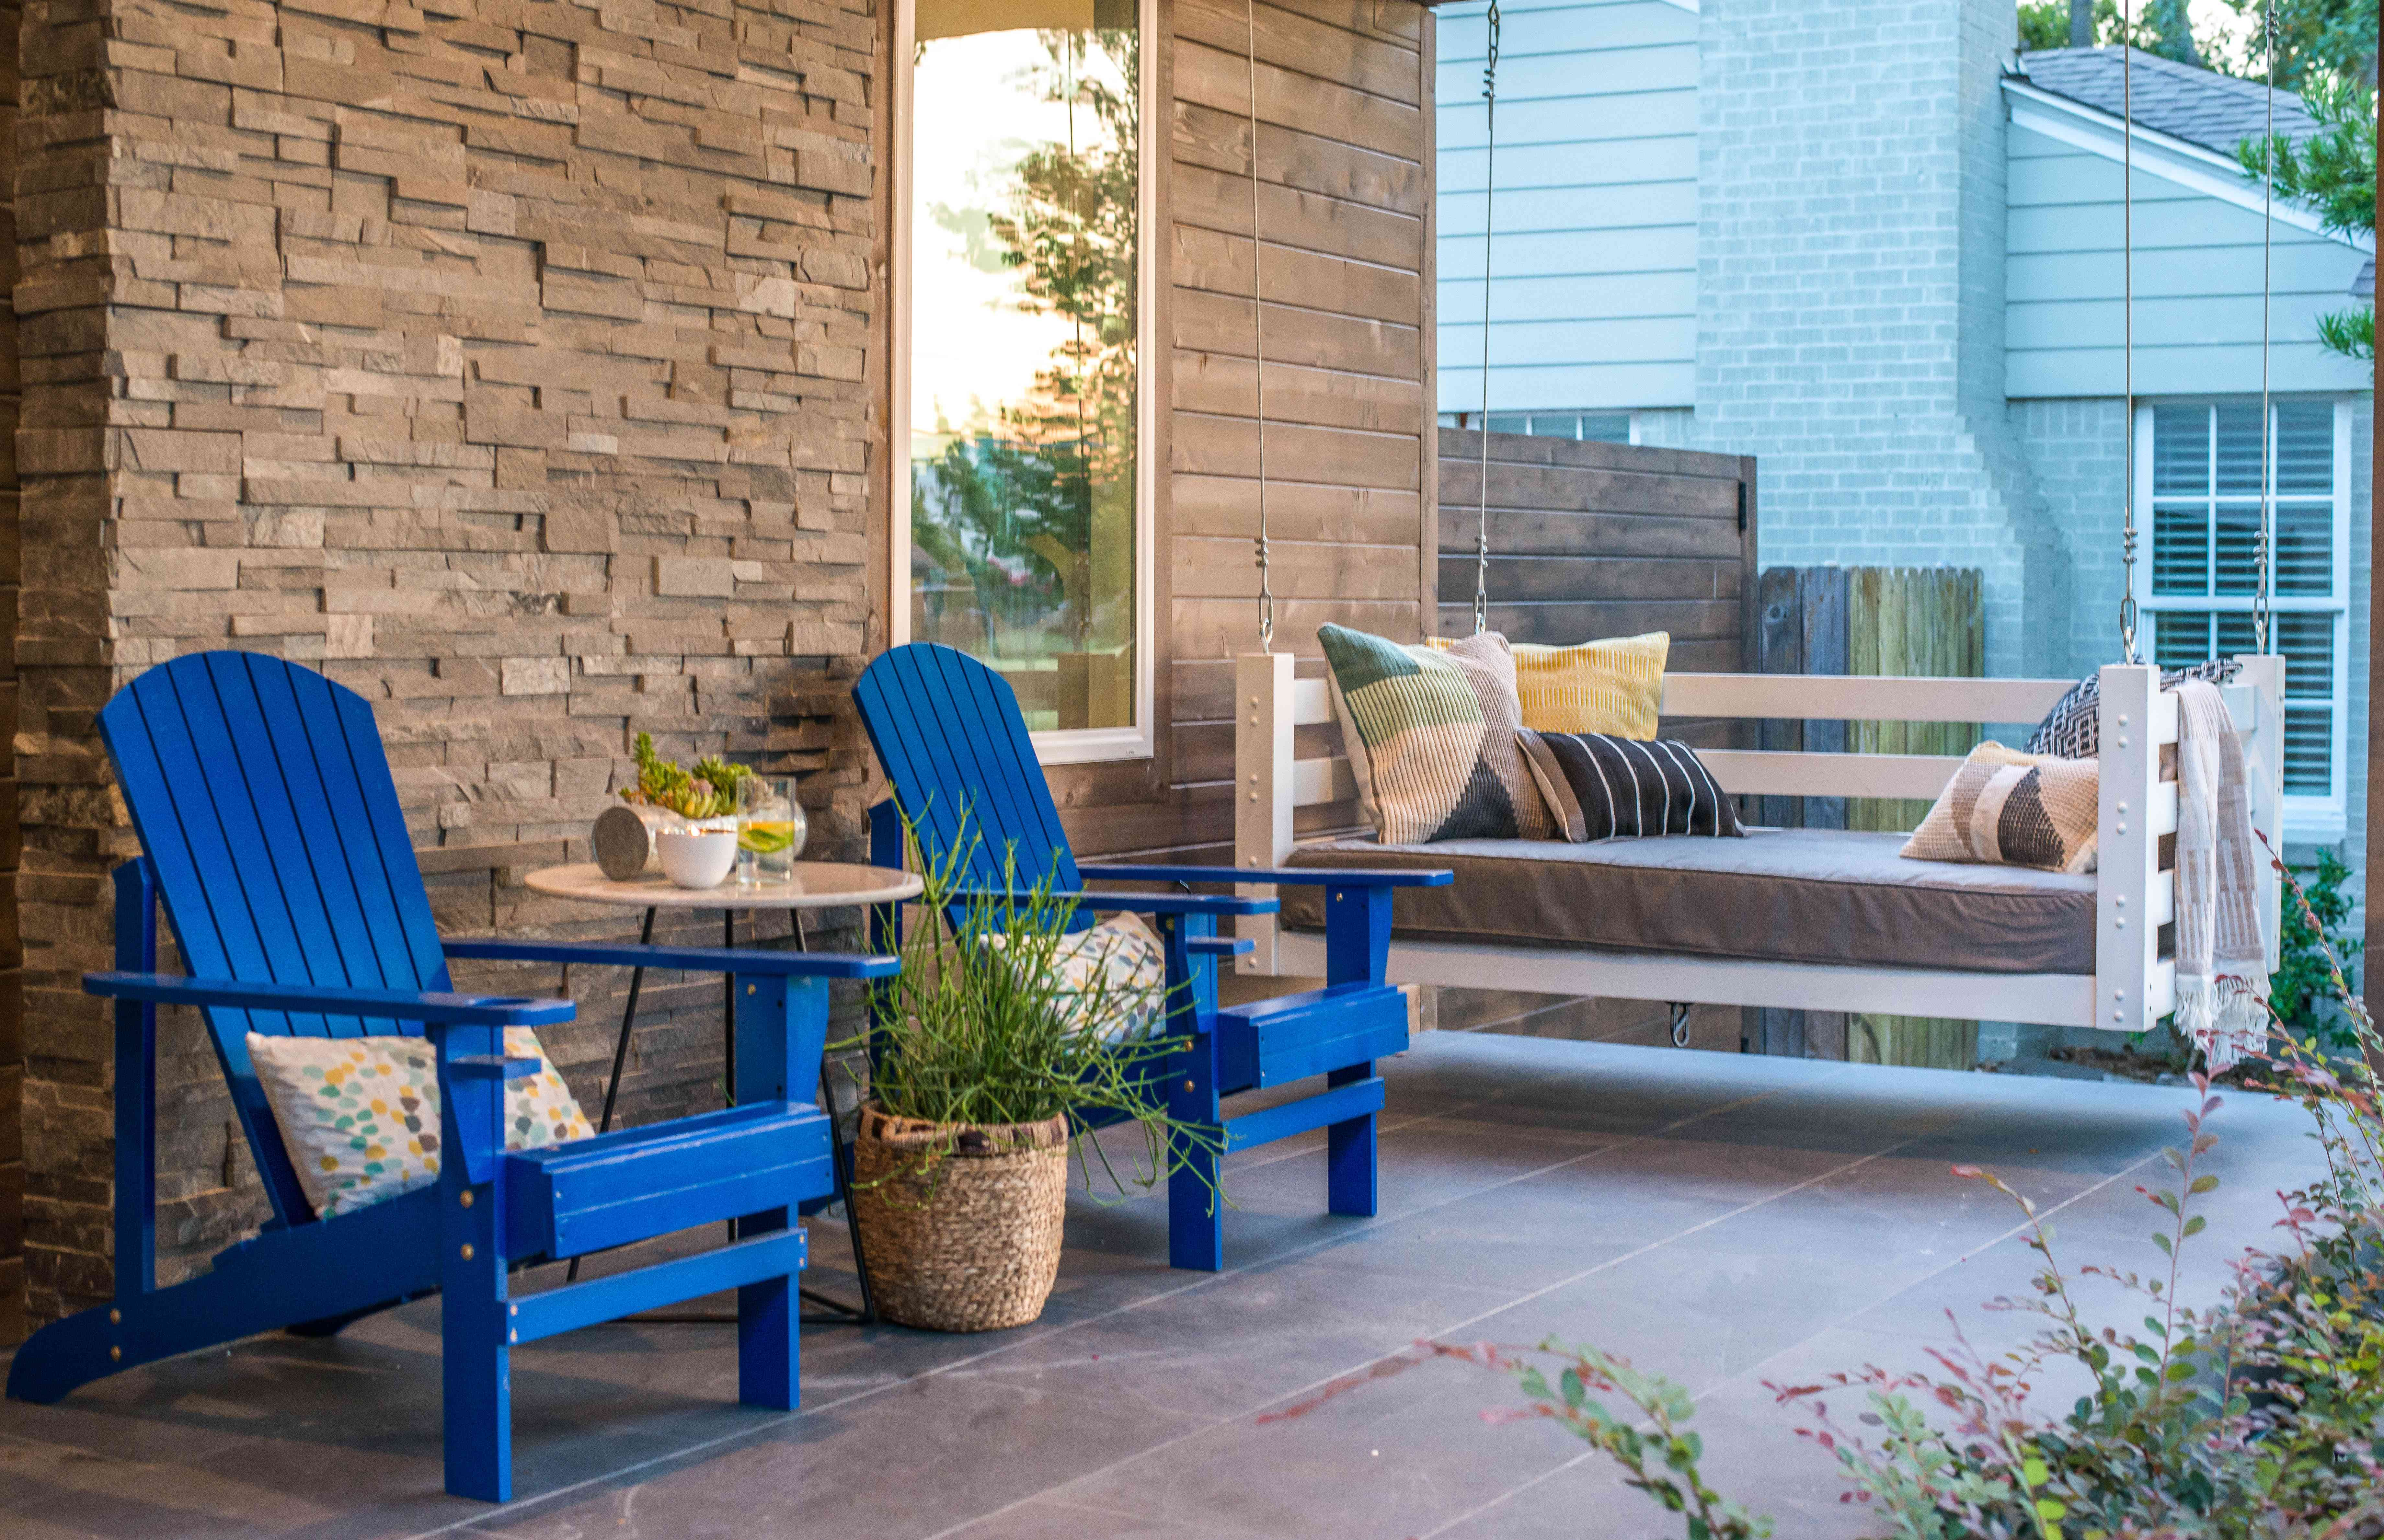 outdoor swing with Adirondack chairs